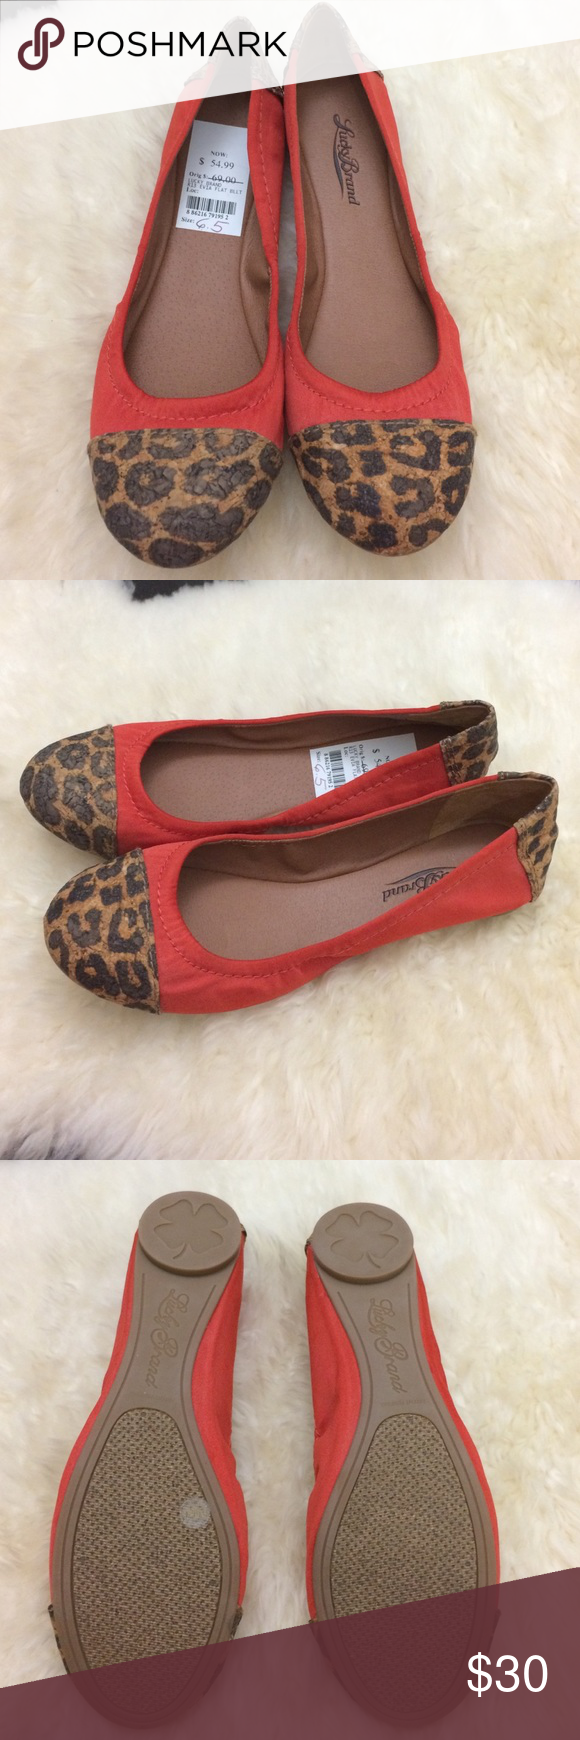 NWT Lucky Brand Flats New, never worn Lucky Brand flats! Dark orange with cheetah print accents on toe and heel. Flexible, comfortable and cute. Lucky Brand Shoes Flats & Loafers